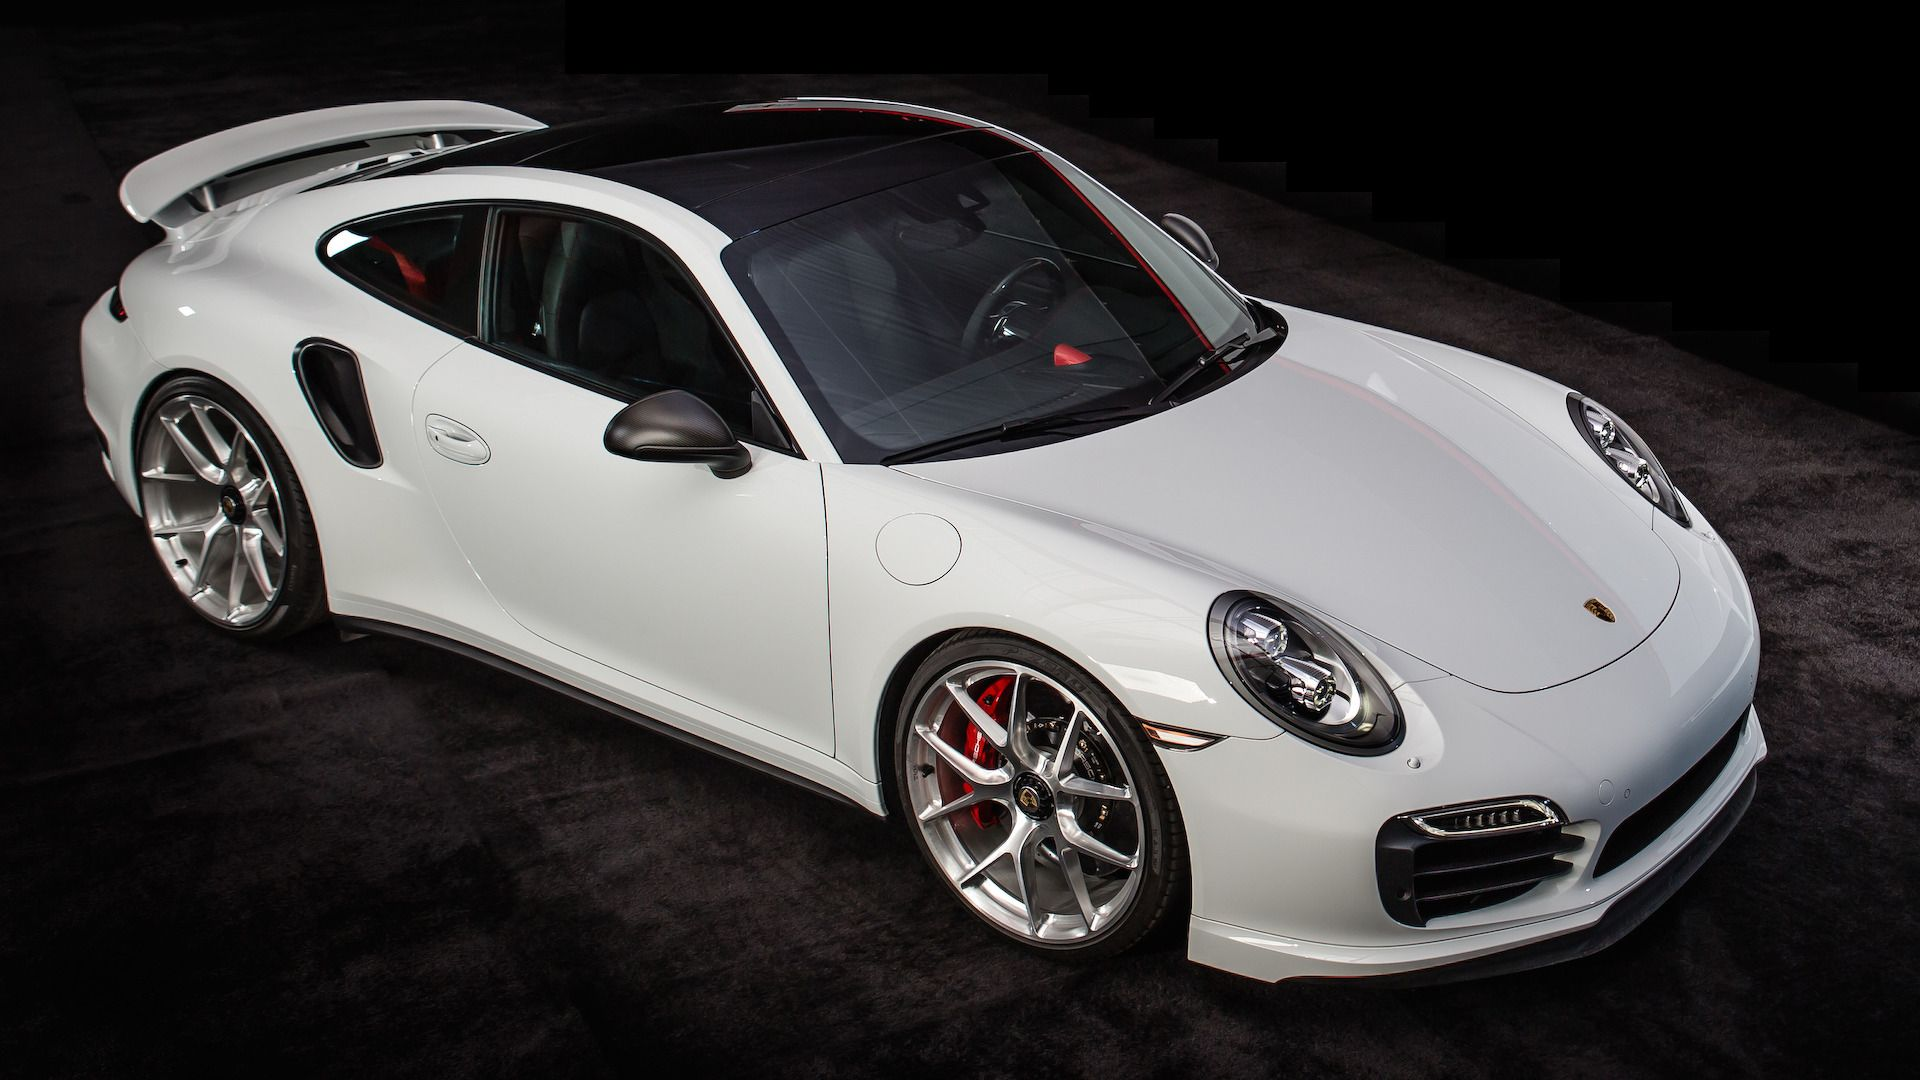 2015 porsche 911 turbo s is up for grabs automotorblog